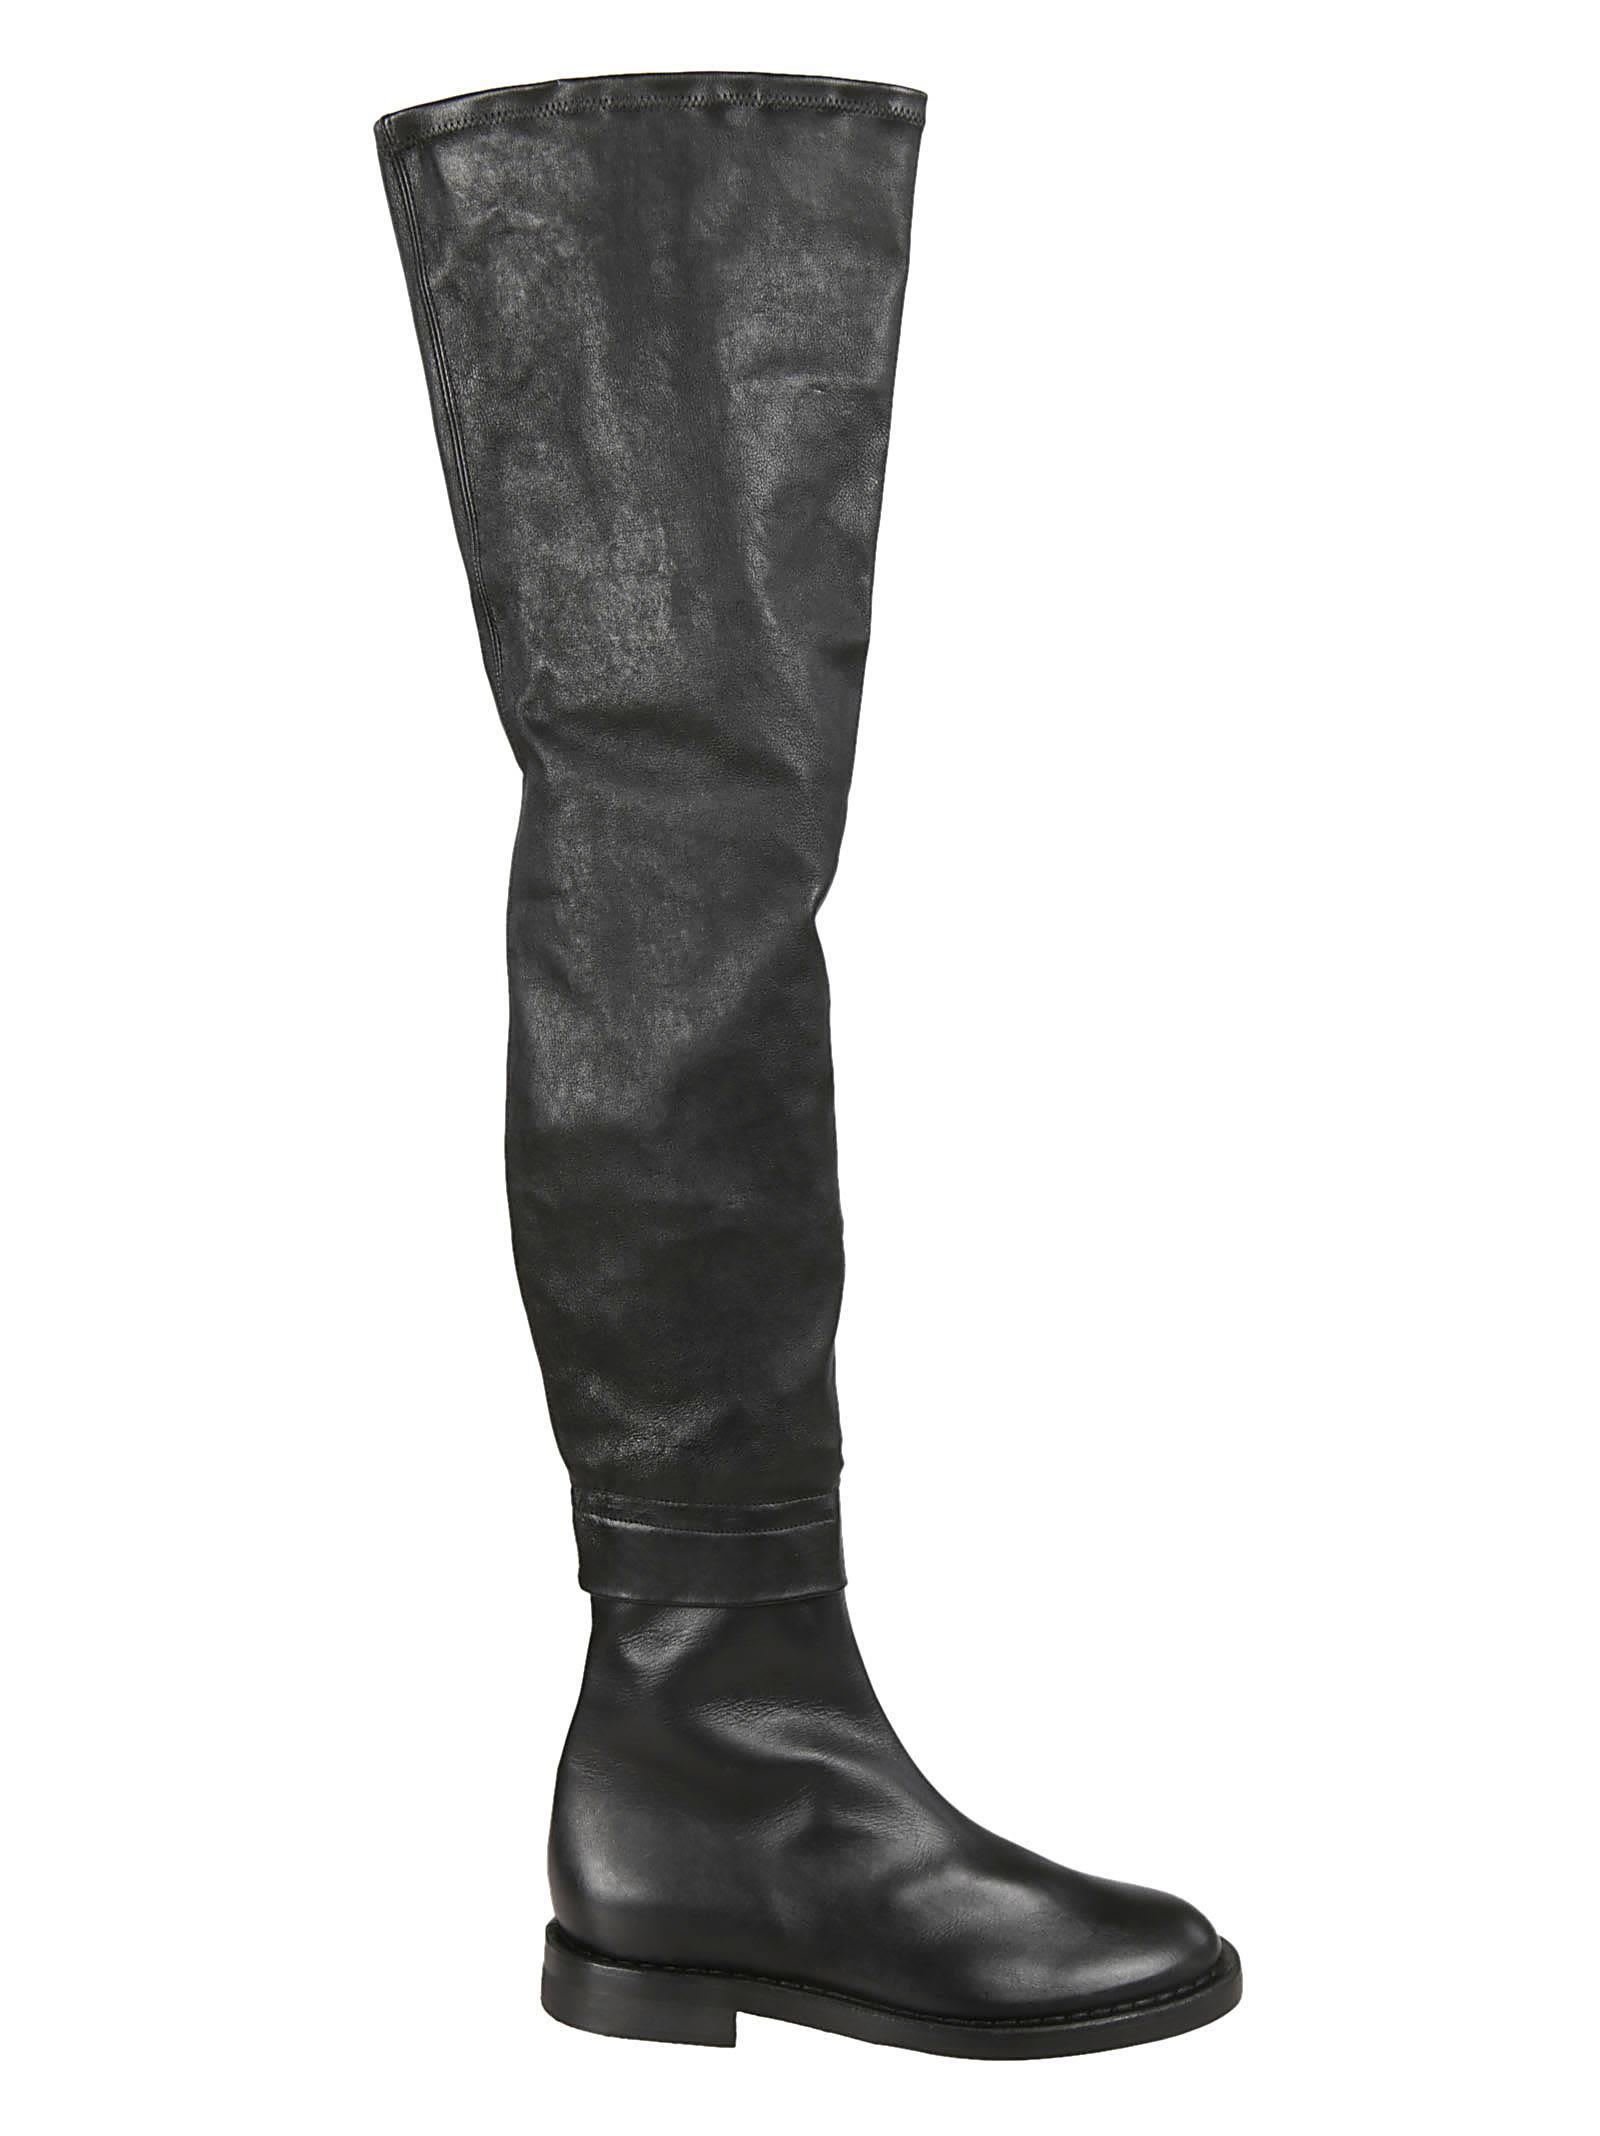 21d6357dfe4 Ann Demeulemeester Thigh-High Over-The-Knee Boots